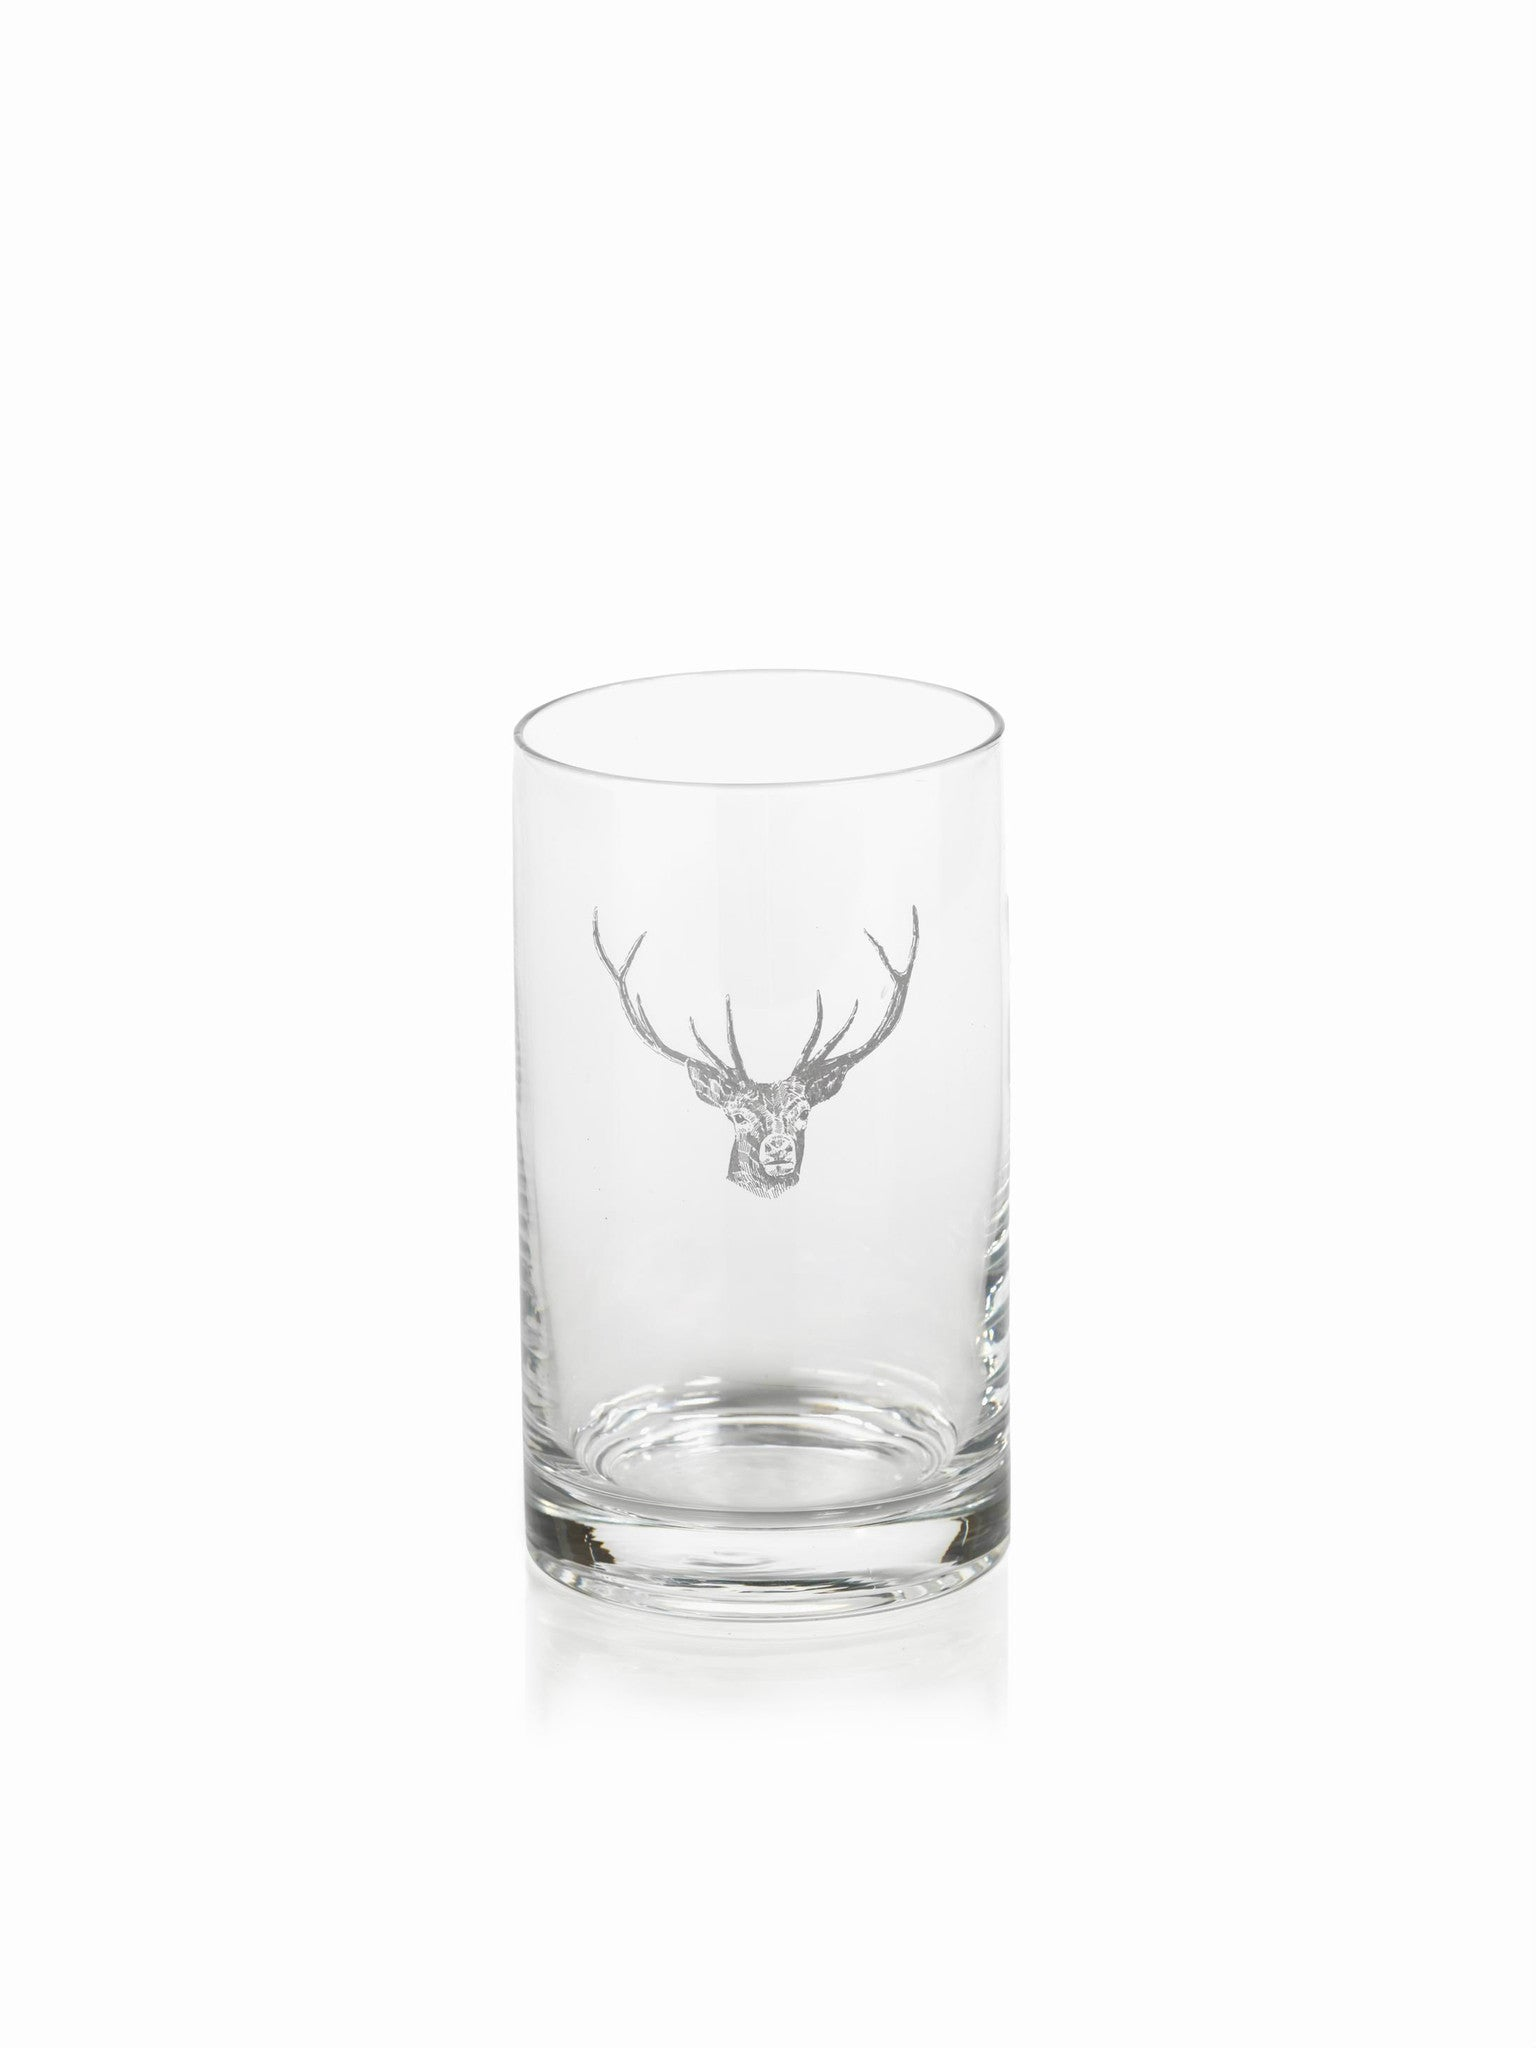 Stag Head Pitcher and Glassware - CARLYLE AVENUE